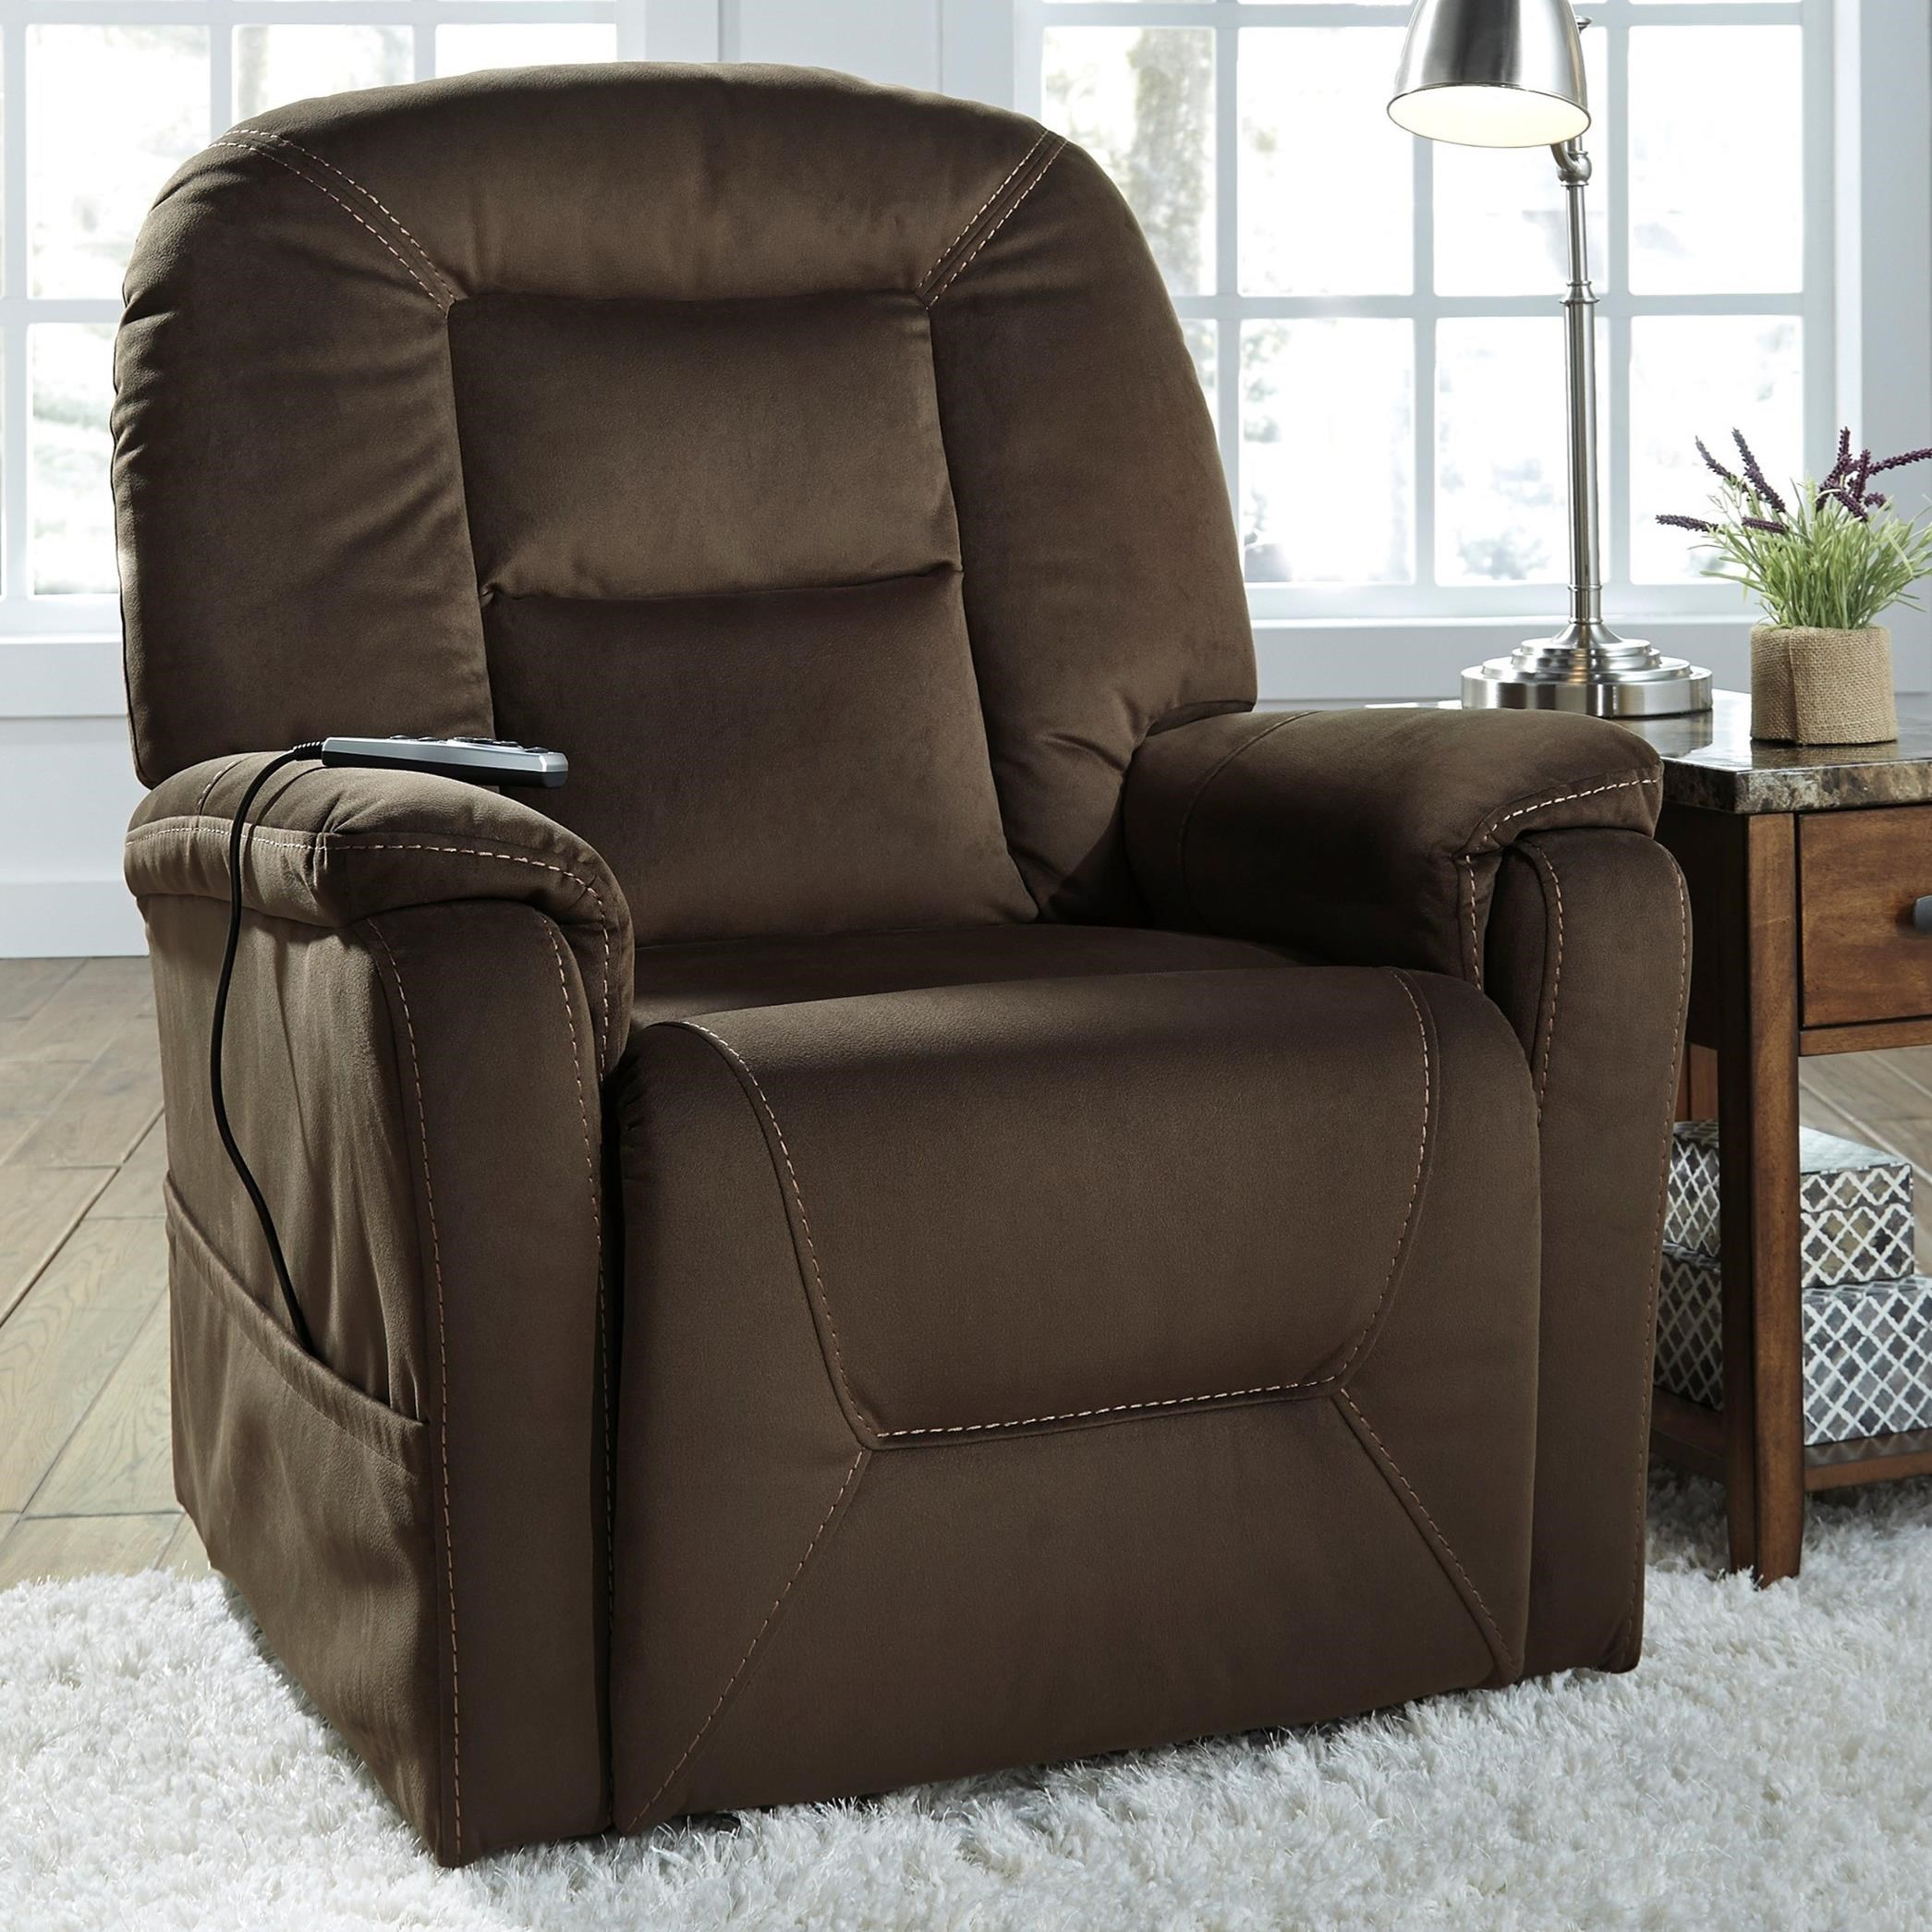 Signature Design By Ashley Samir Power Lift Recliner With